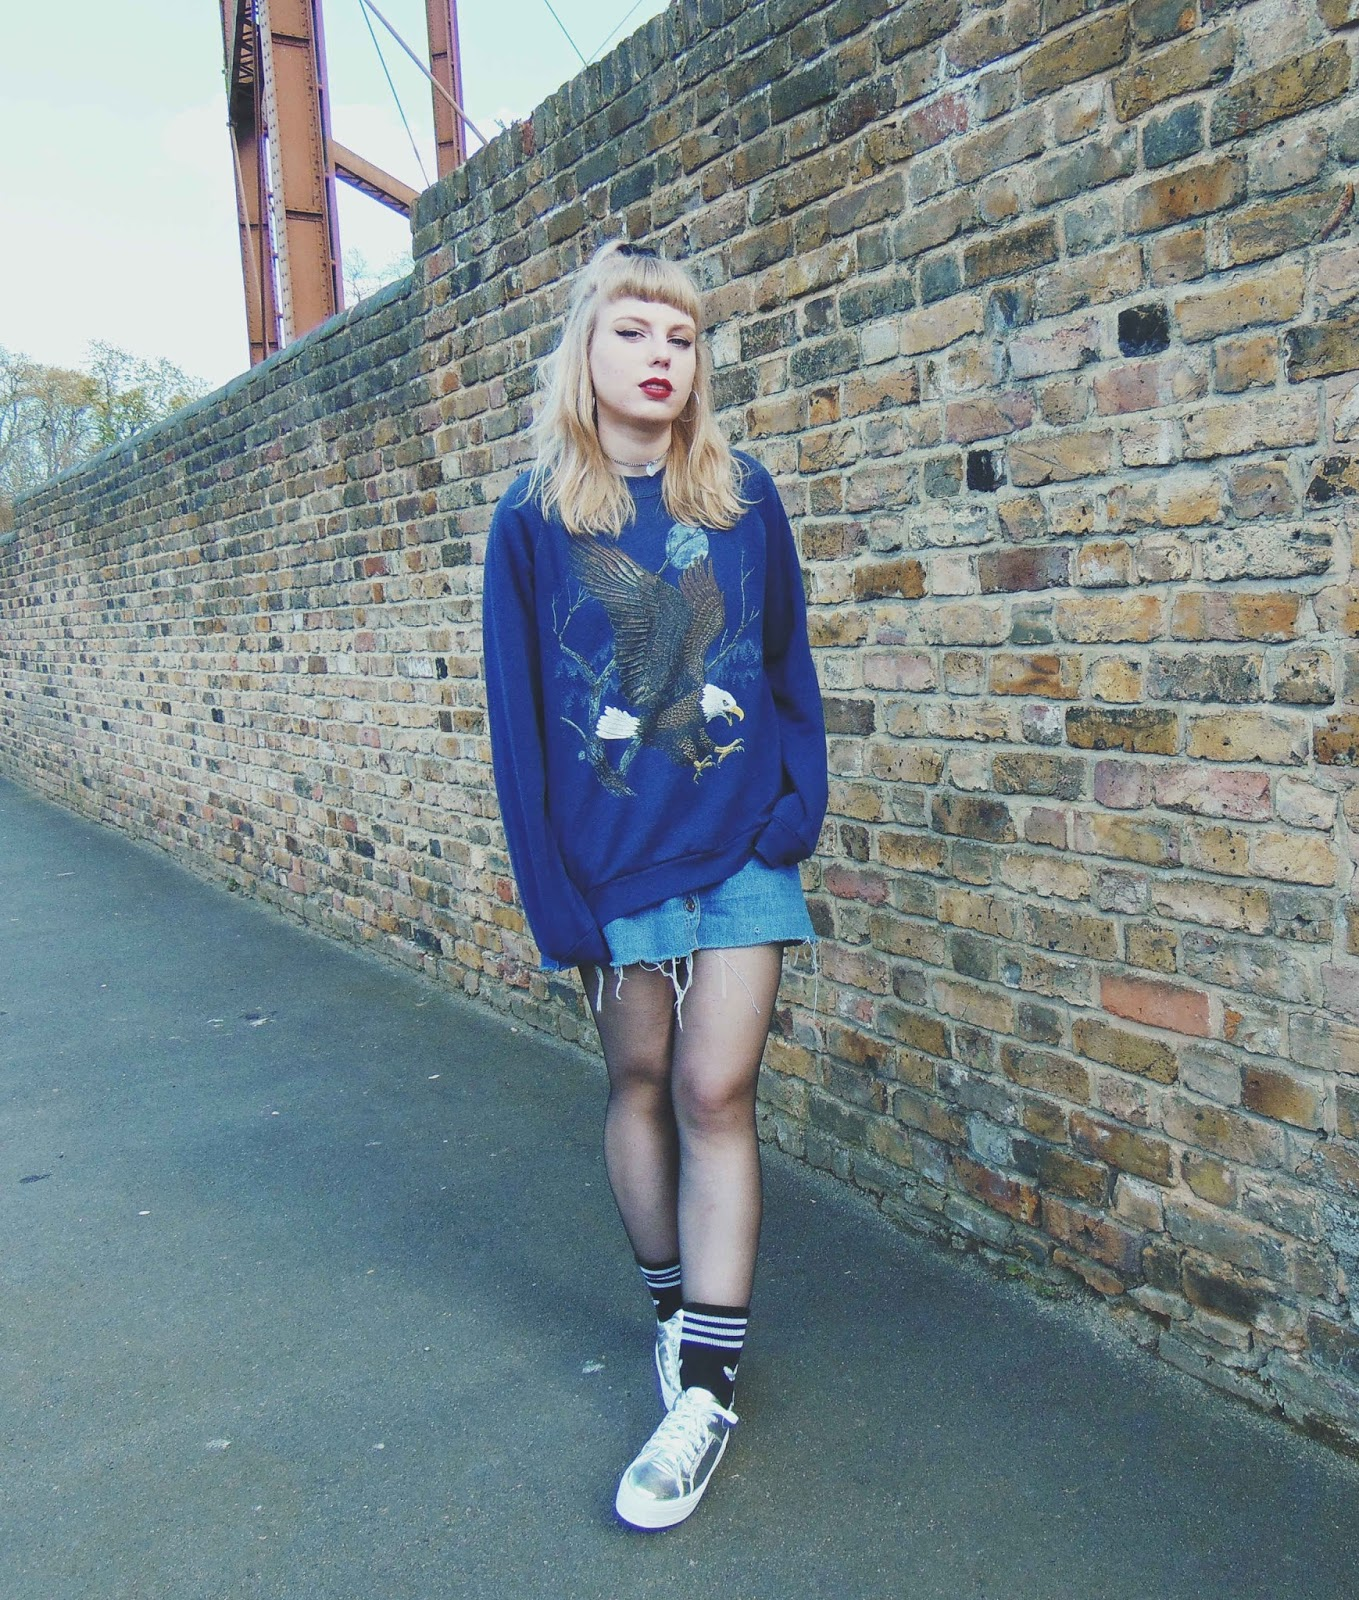 vintage jumper, vintage animal print jumper, button down denim skirt, silver platform trainers, silver flatform shoes, adidas socks, alternative fashion style, 90's outfit ootd